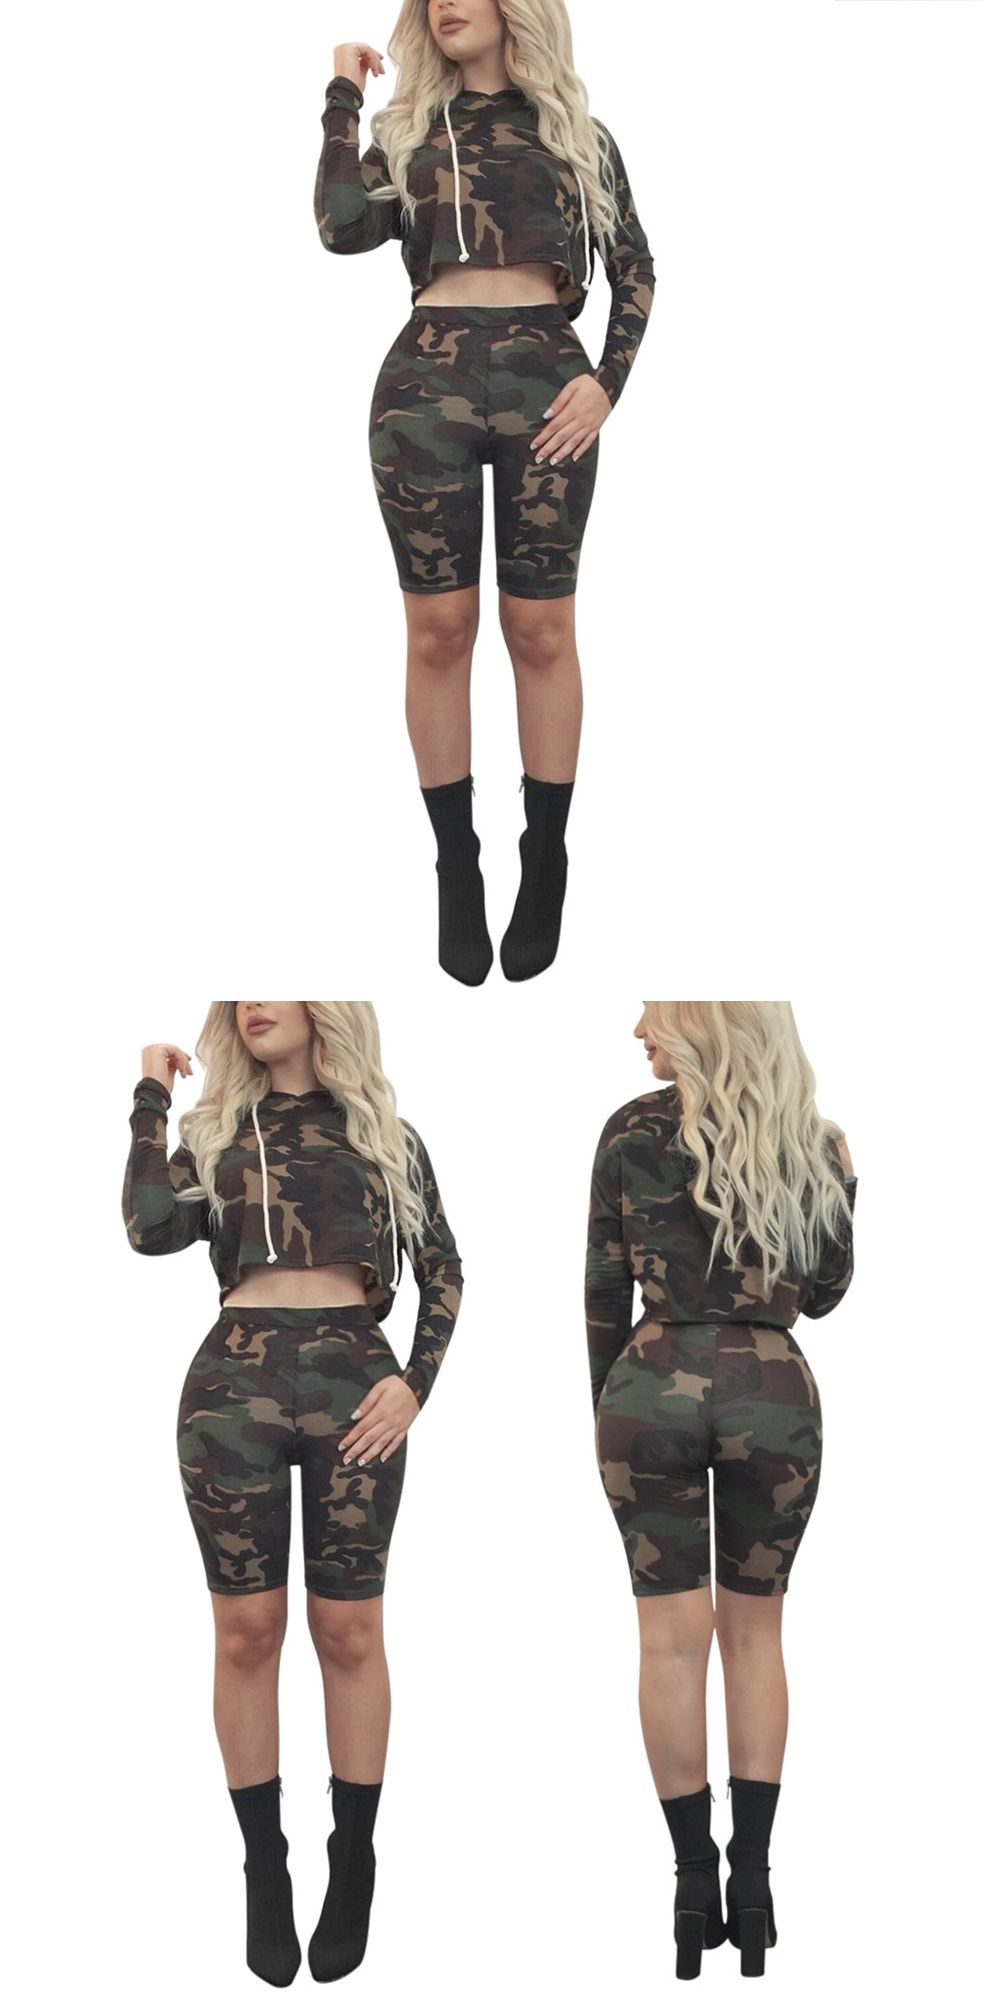 53ff734b4dd9 Fashion Women Army Green Camouflage Shirt Short Top Pencil Shorts Two Piece  Set Long Sleeve Summer Camouflage Suit